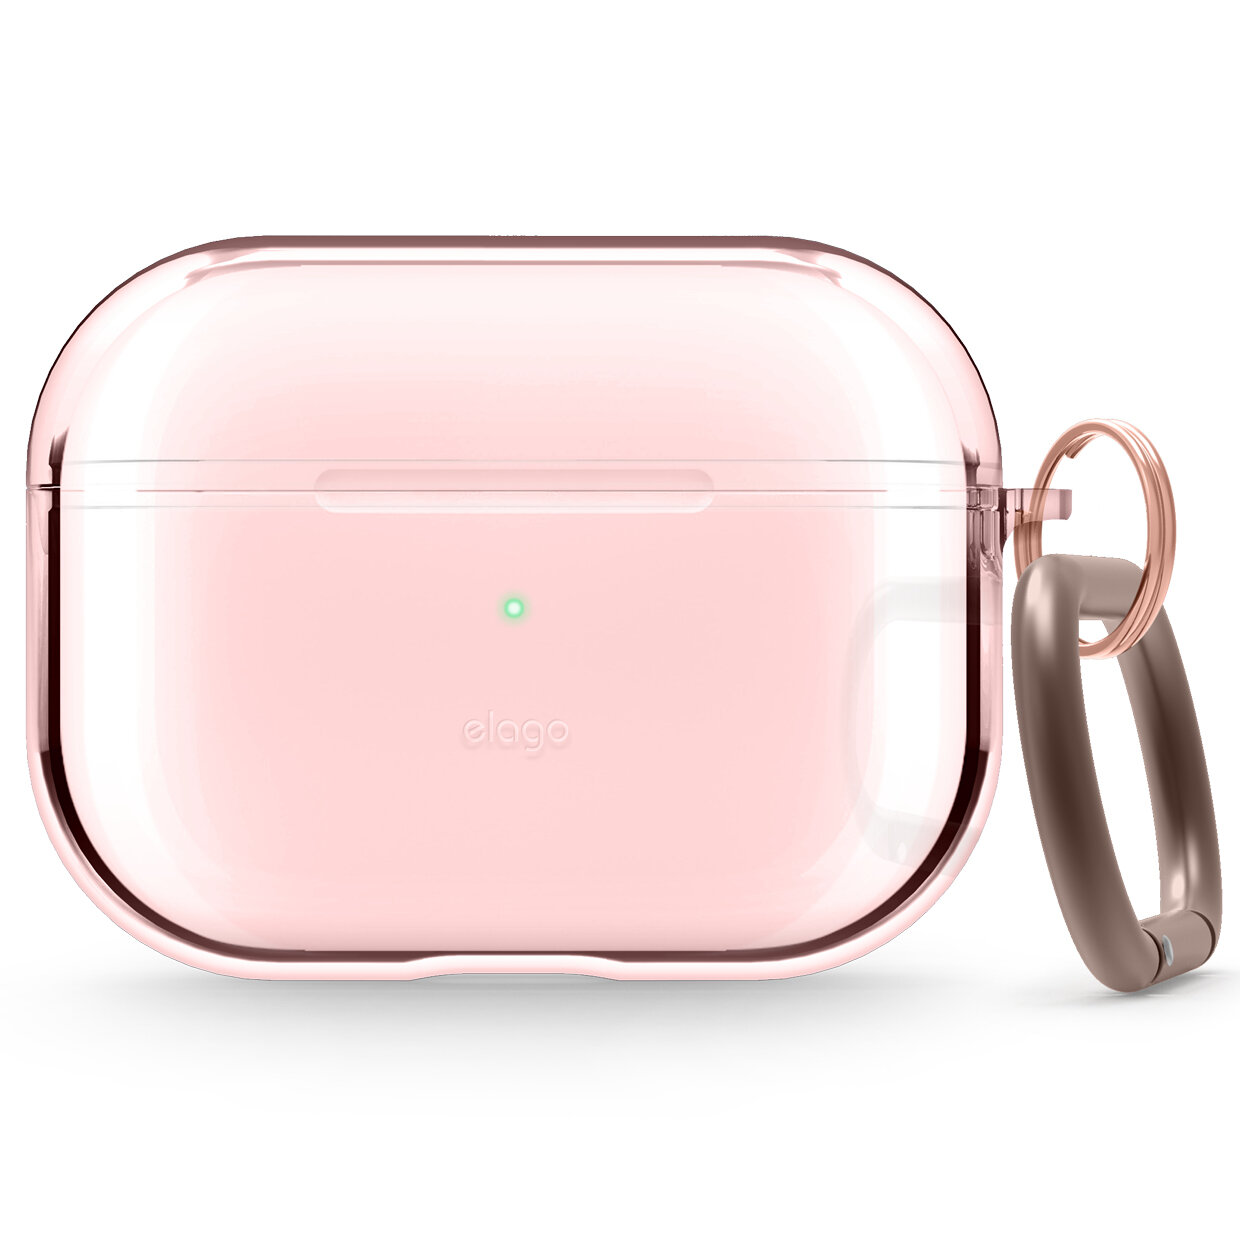 Airpods Pro Clear Case Lovely Pink In Stock On March 20 2020